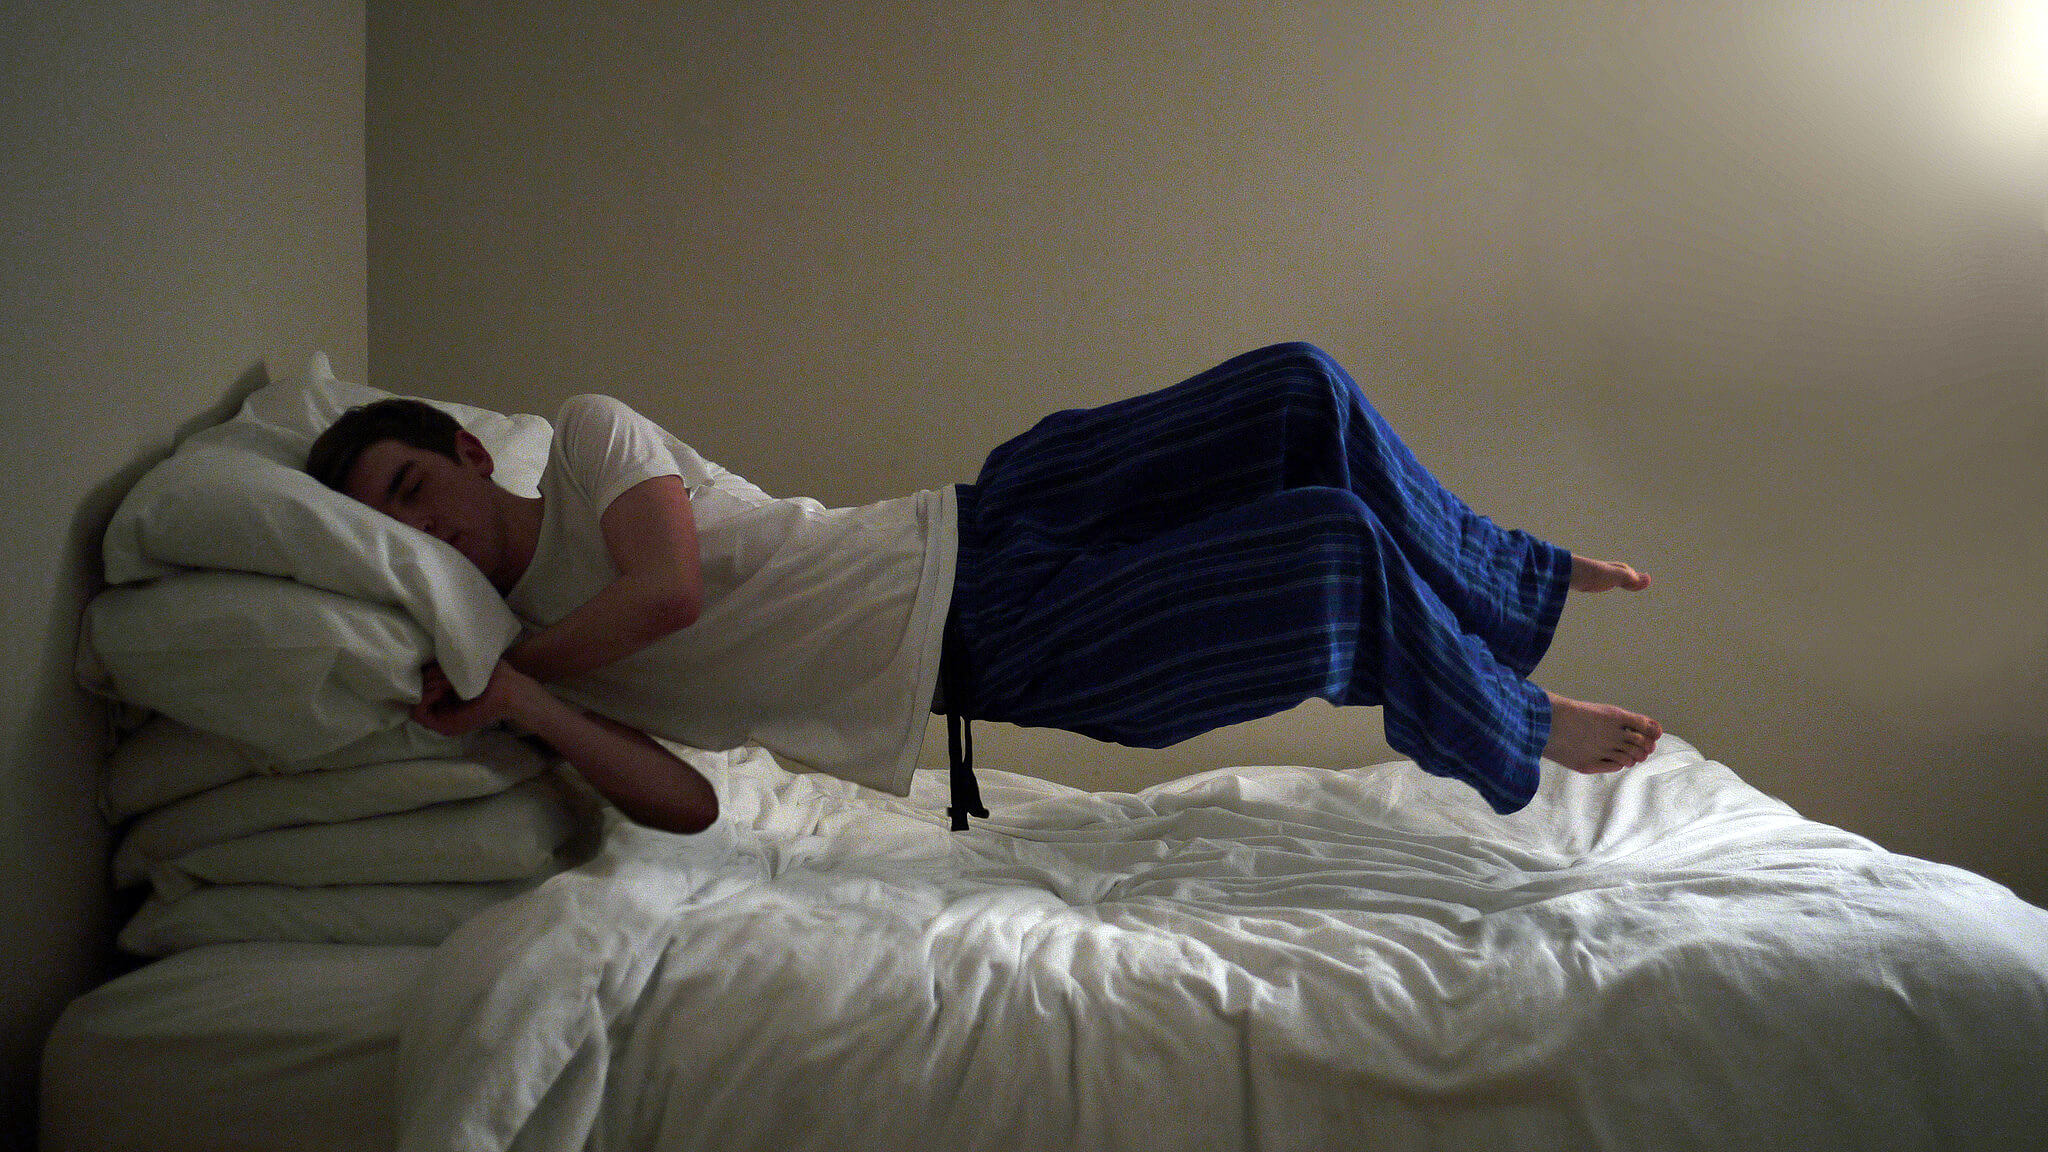 photo of sleeping man floating above bed